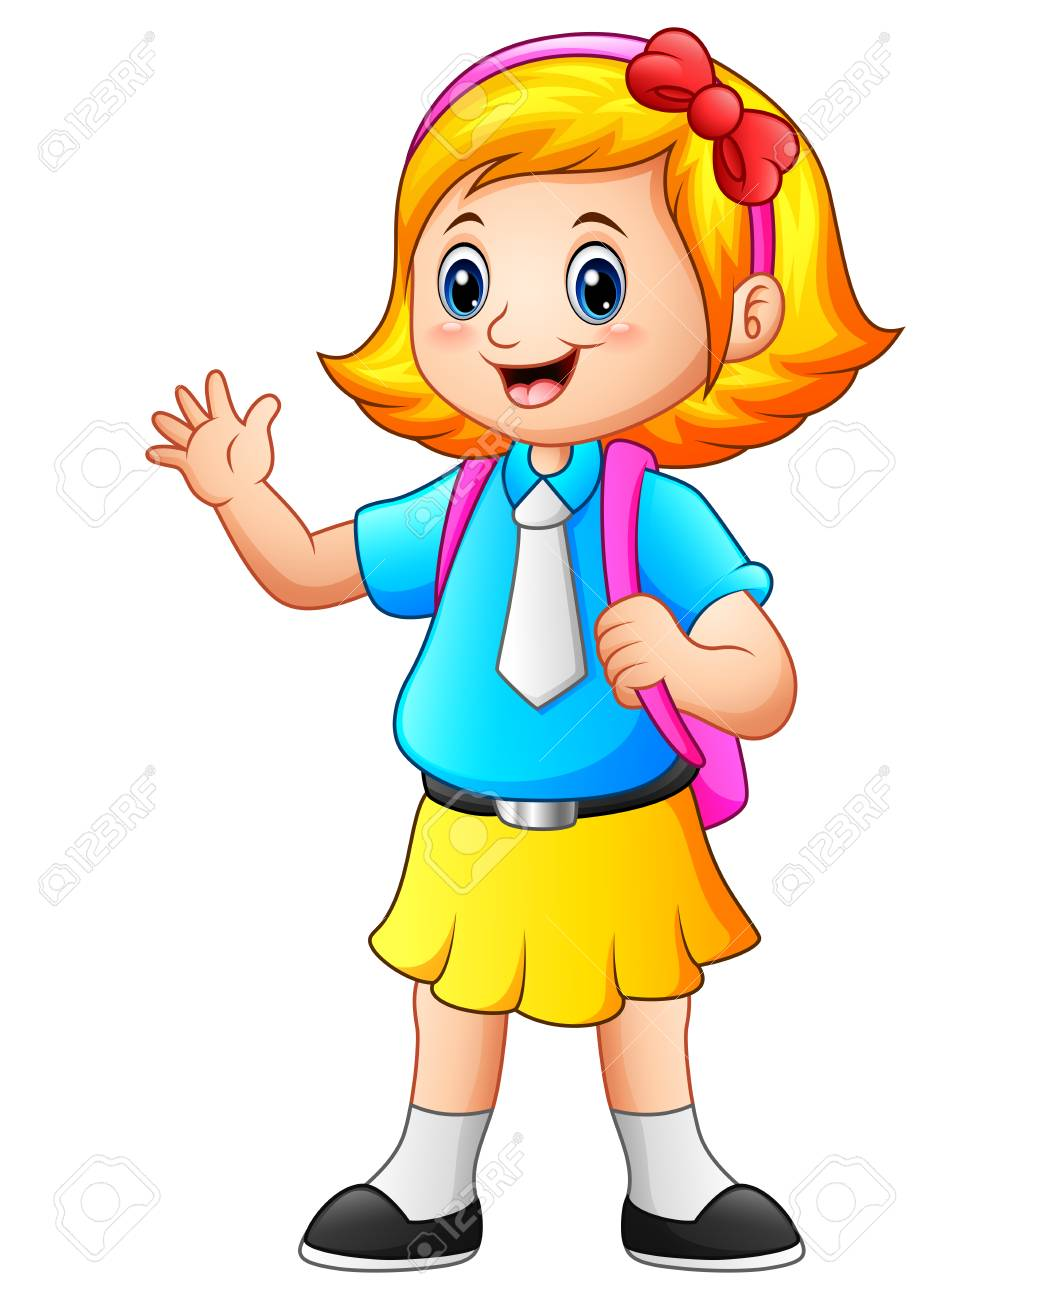 Girl go to school clipart 8 » Clipart Station.